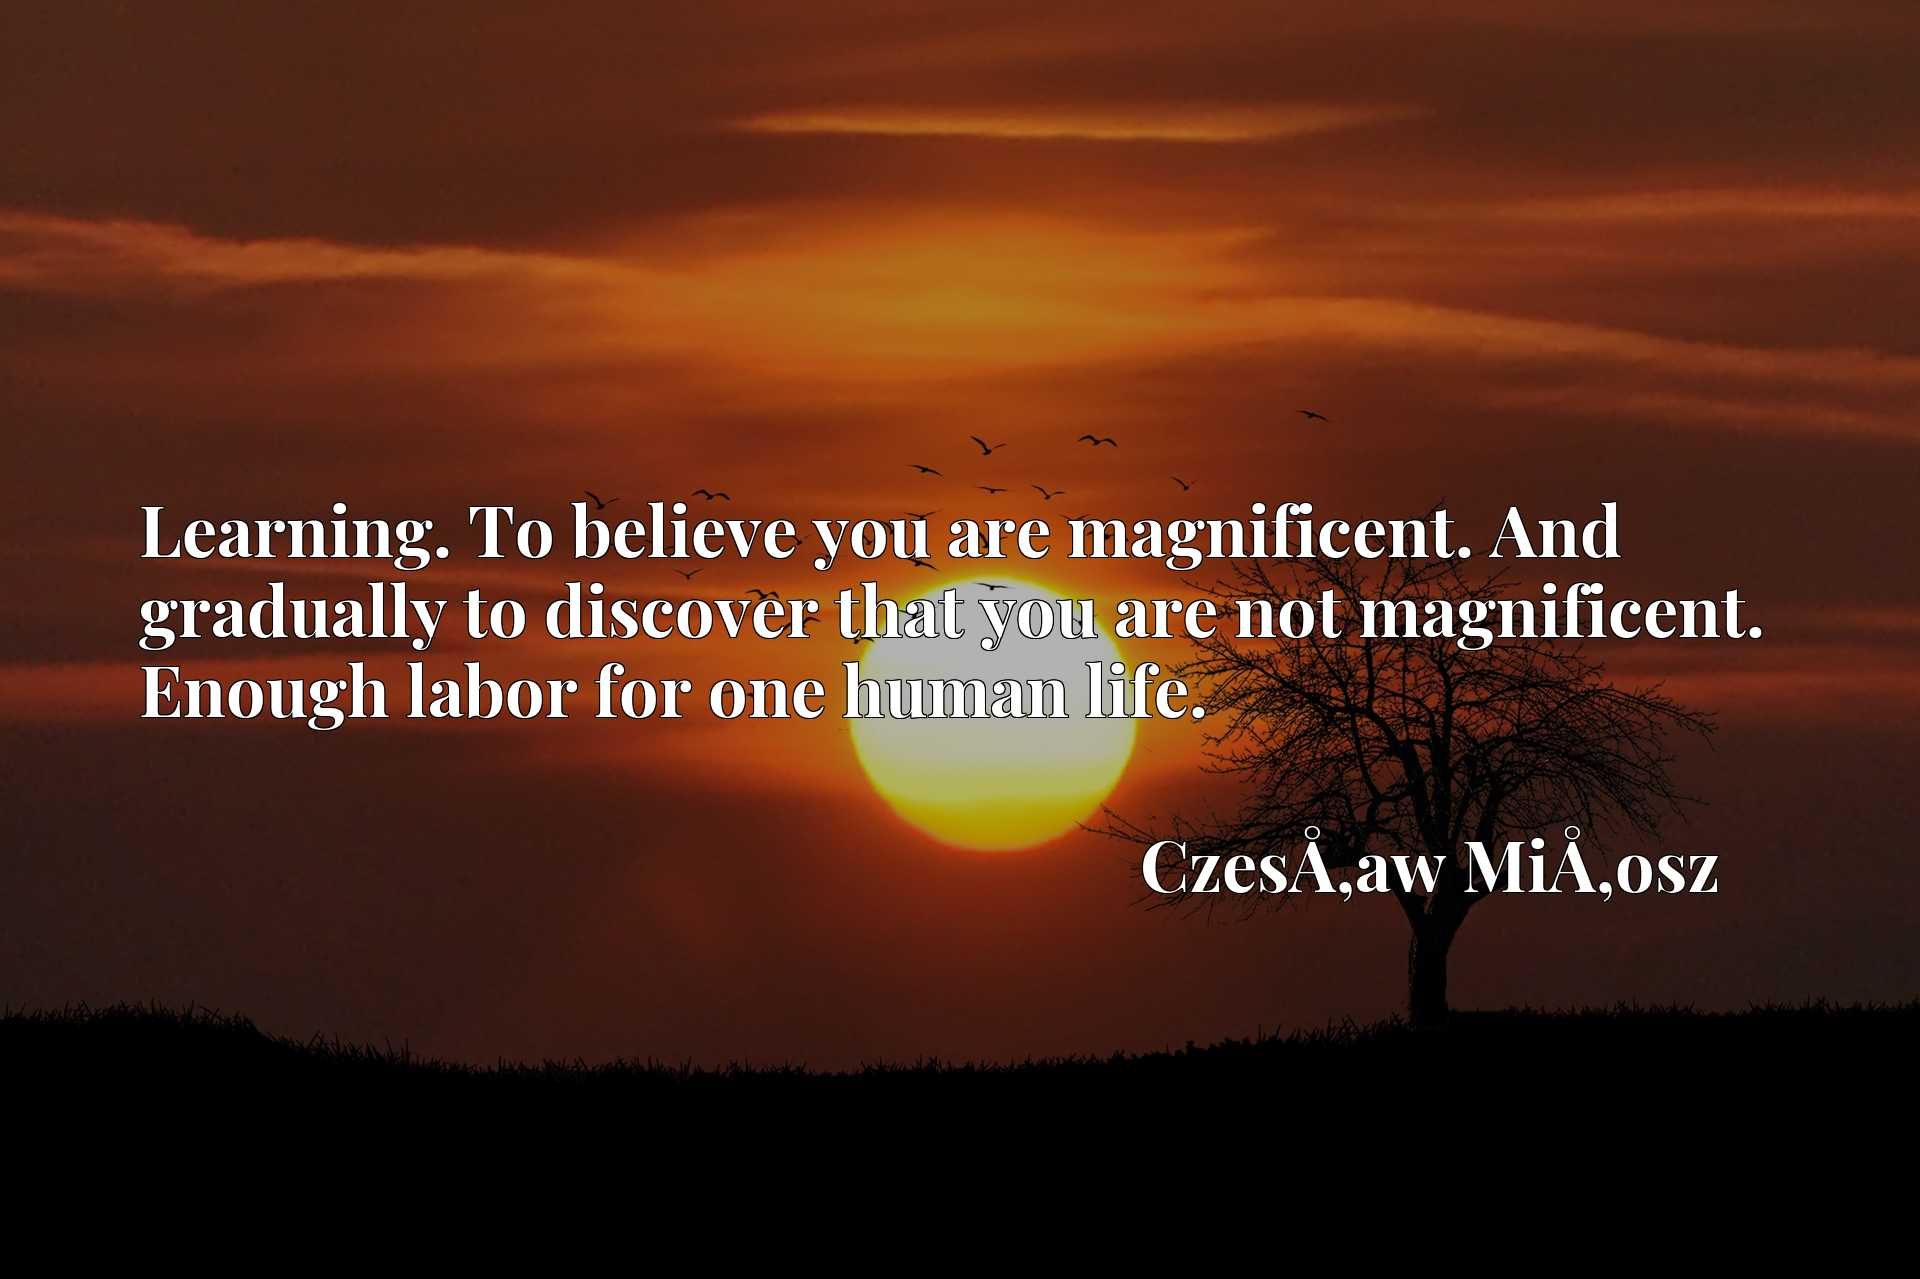 Learning. To believe you are magnificent. And gradually to discover that you are not magnificent. Enough labor for one human life.